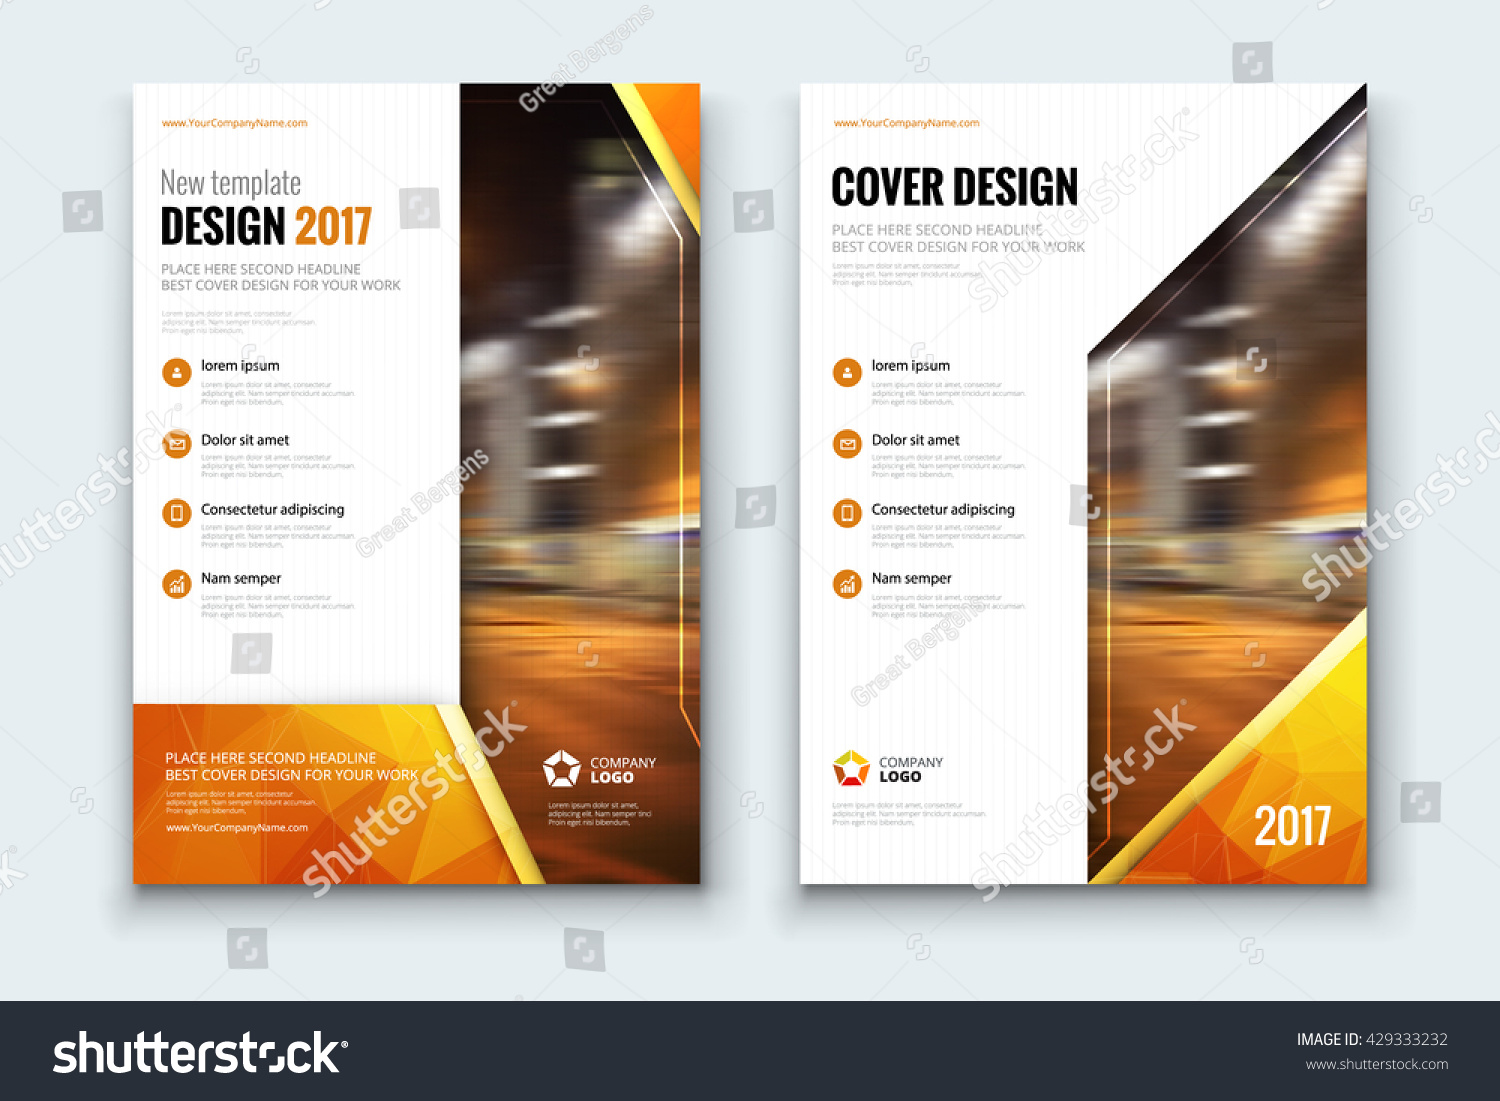 Poster design template - Poster Design Corporate Business Template For Brochure Report Catalog Magazine Layout With